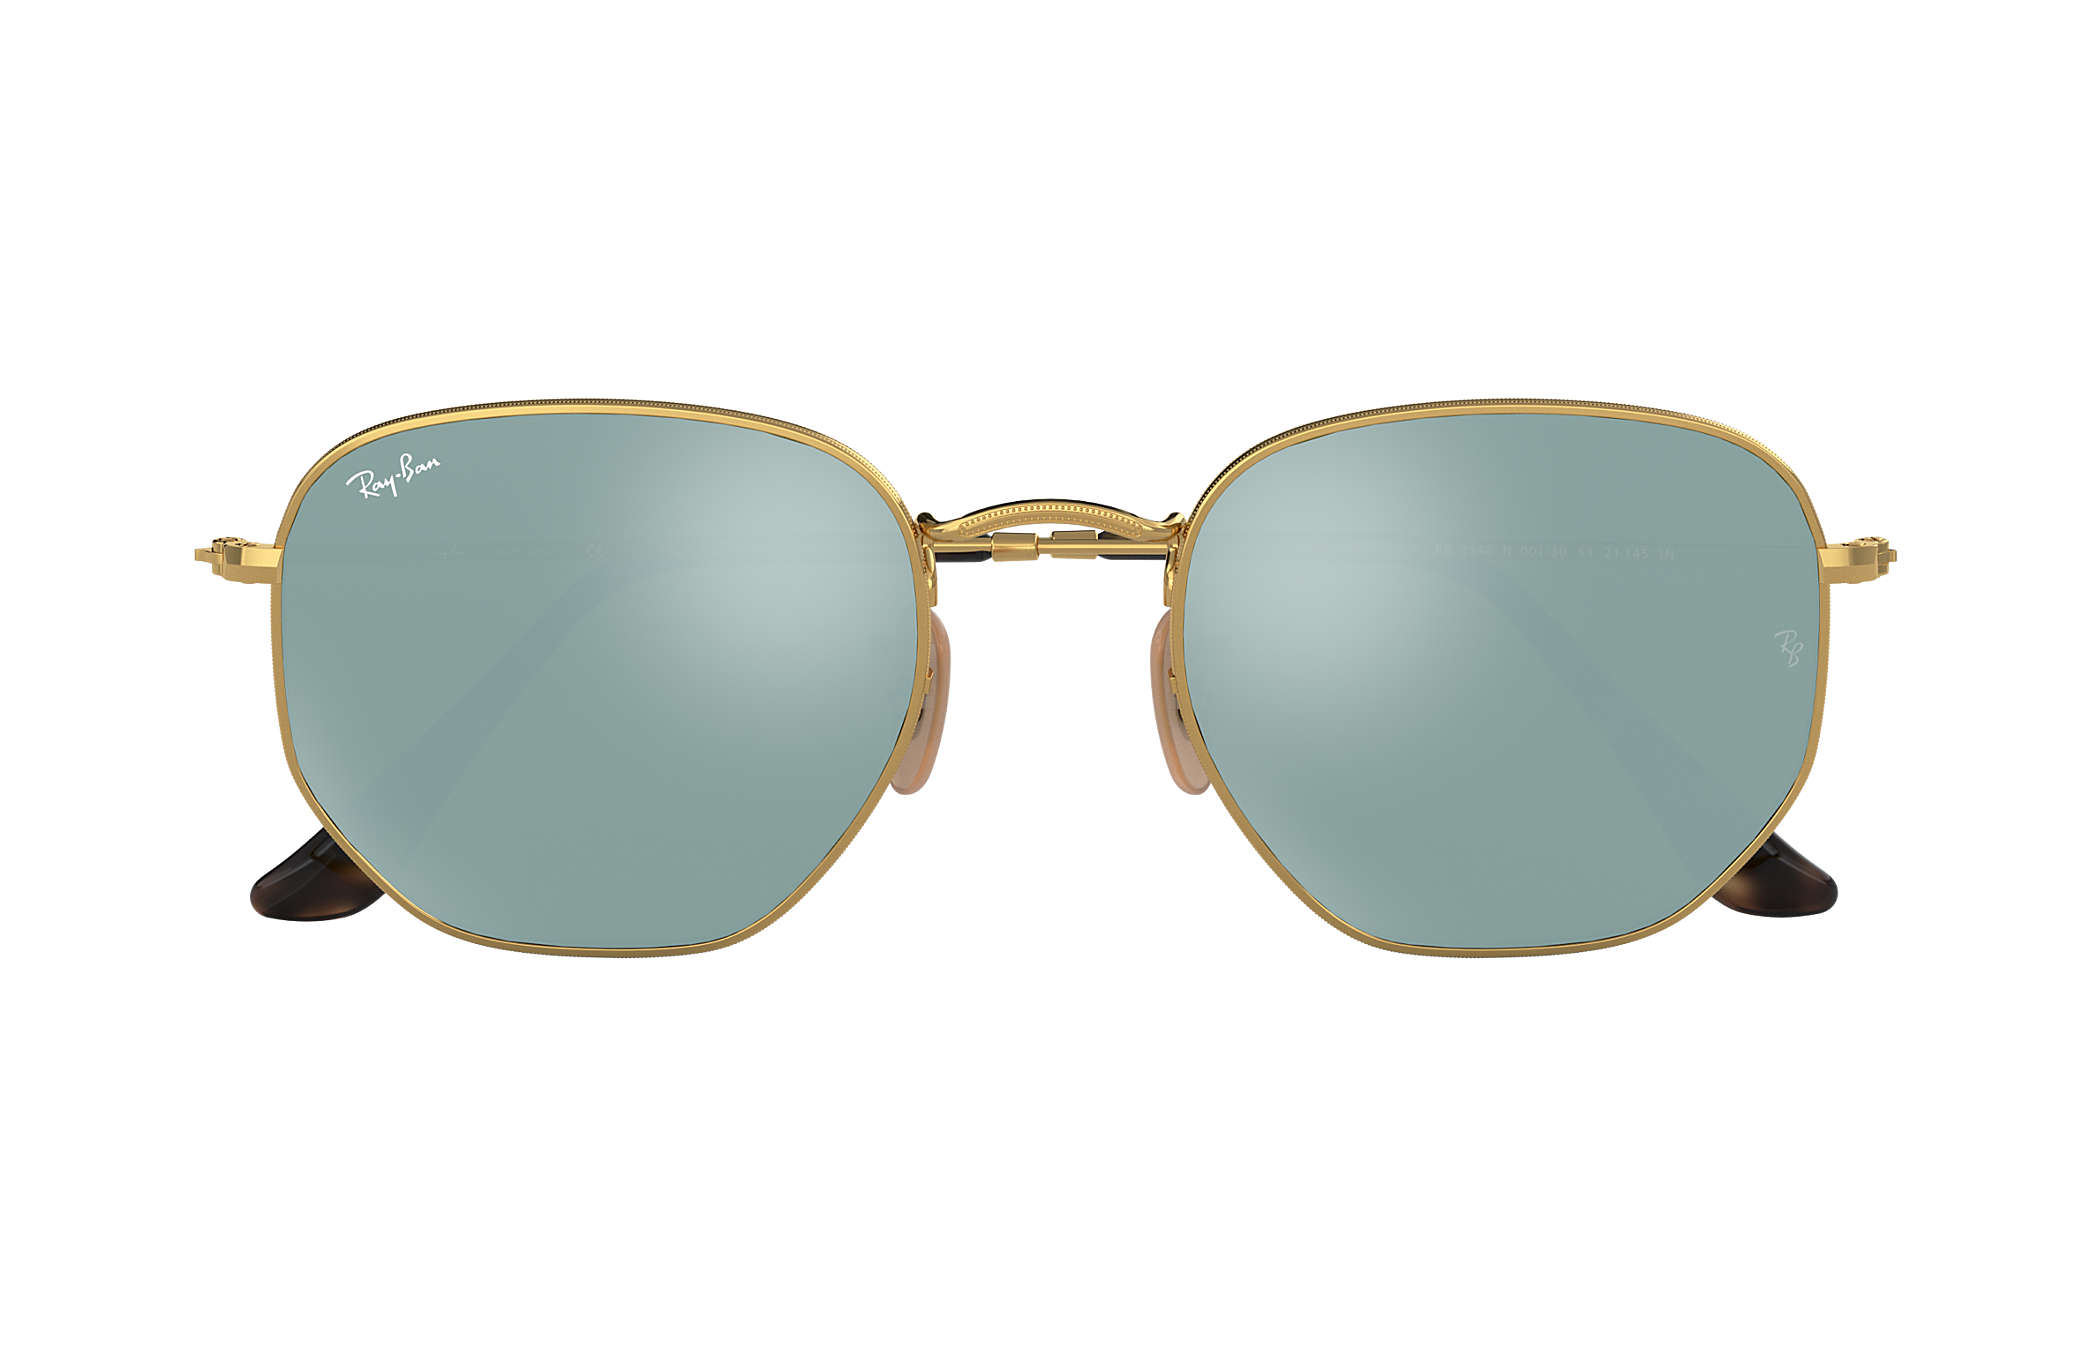 Ray-Ban Hexagonal Flat Lenses RB3548N Gold - Metal - Silver Lenses ... 1f50e33c53